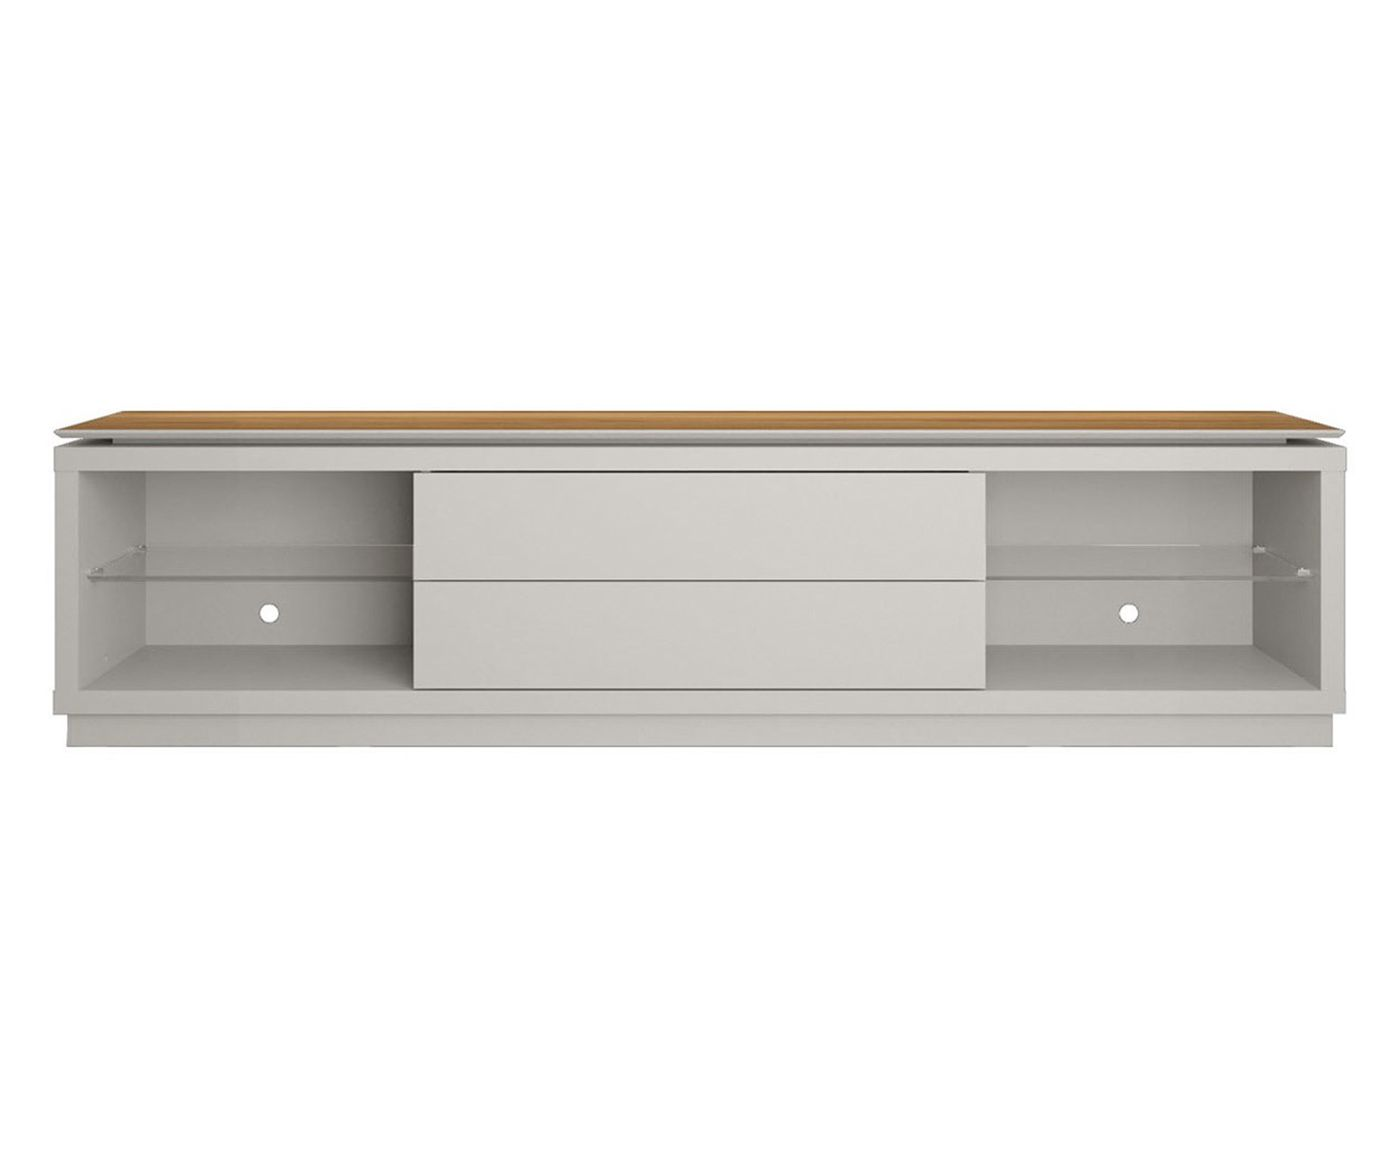 Rack Lincoln Off-White - 217X55,5X44.7cm | Westwing.com.br